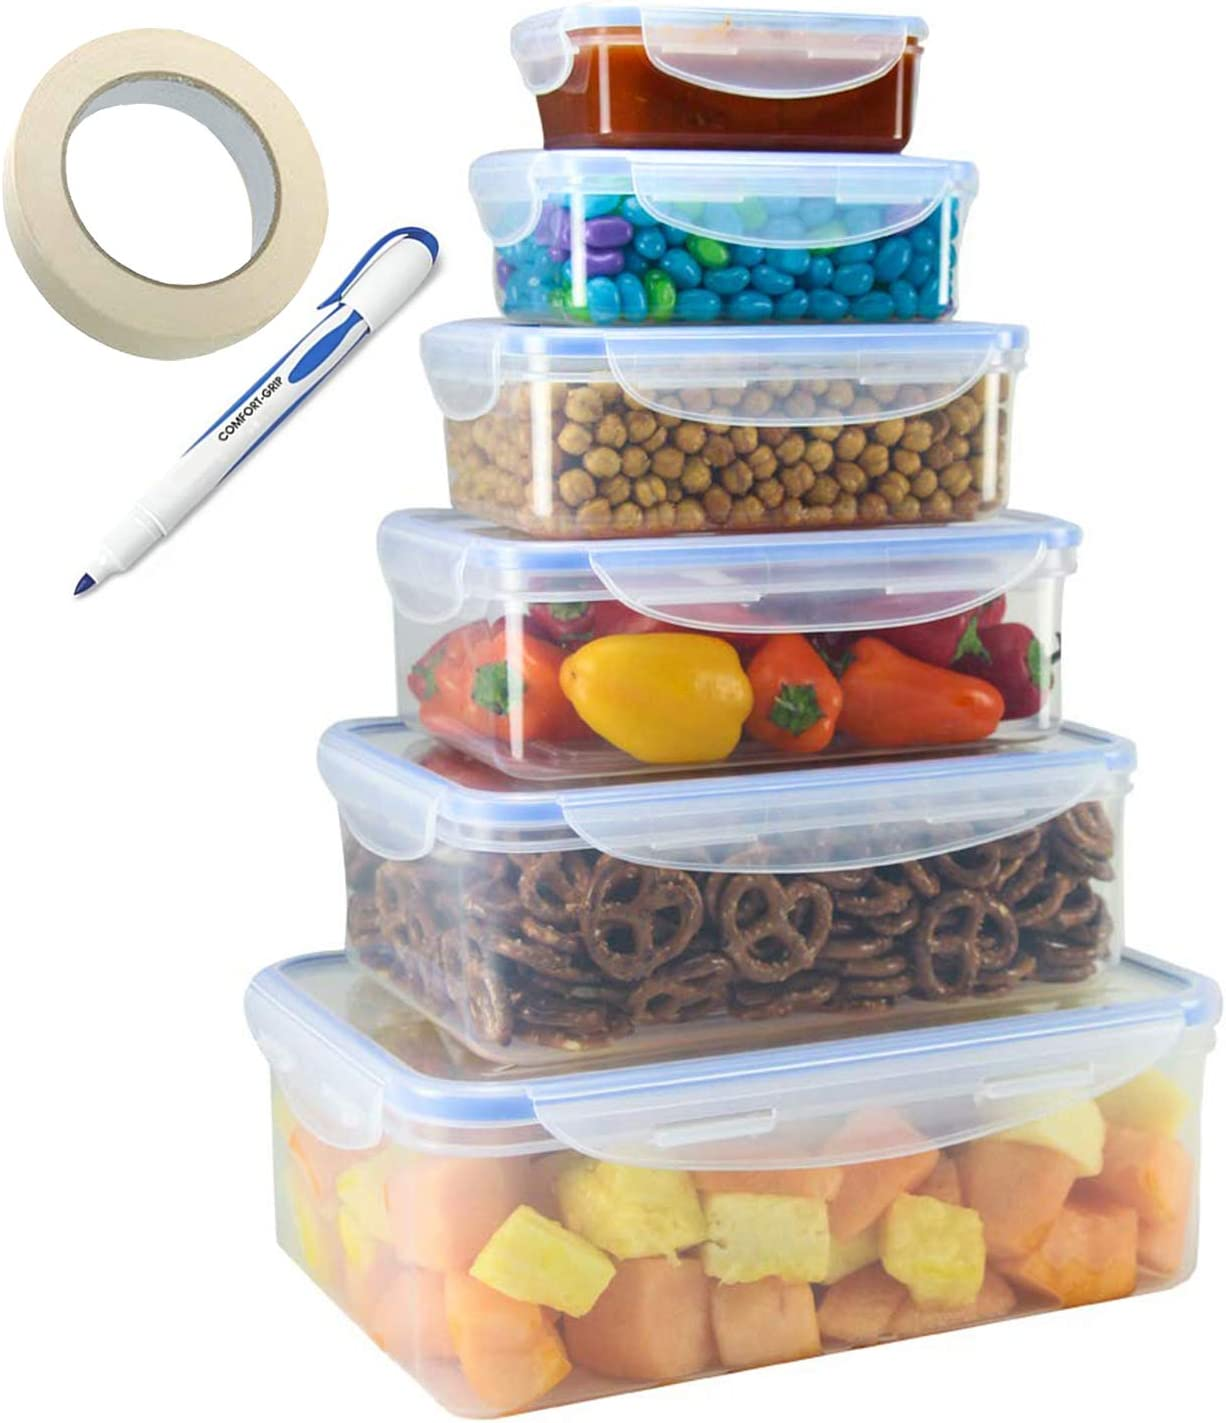 TigerChef Food Storage Container Set With Airtight Leak Proof Snap Lock Lids - BPA Free, Microwave, Freezer and Dishwasher Safe - 12 Piece Containers Set Includes Freezer Labels And Marker